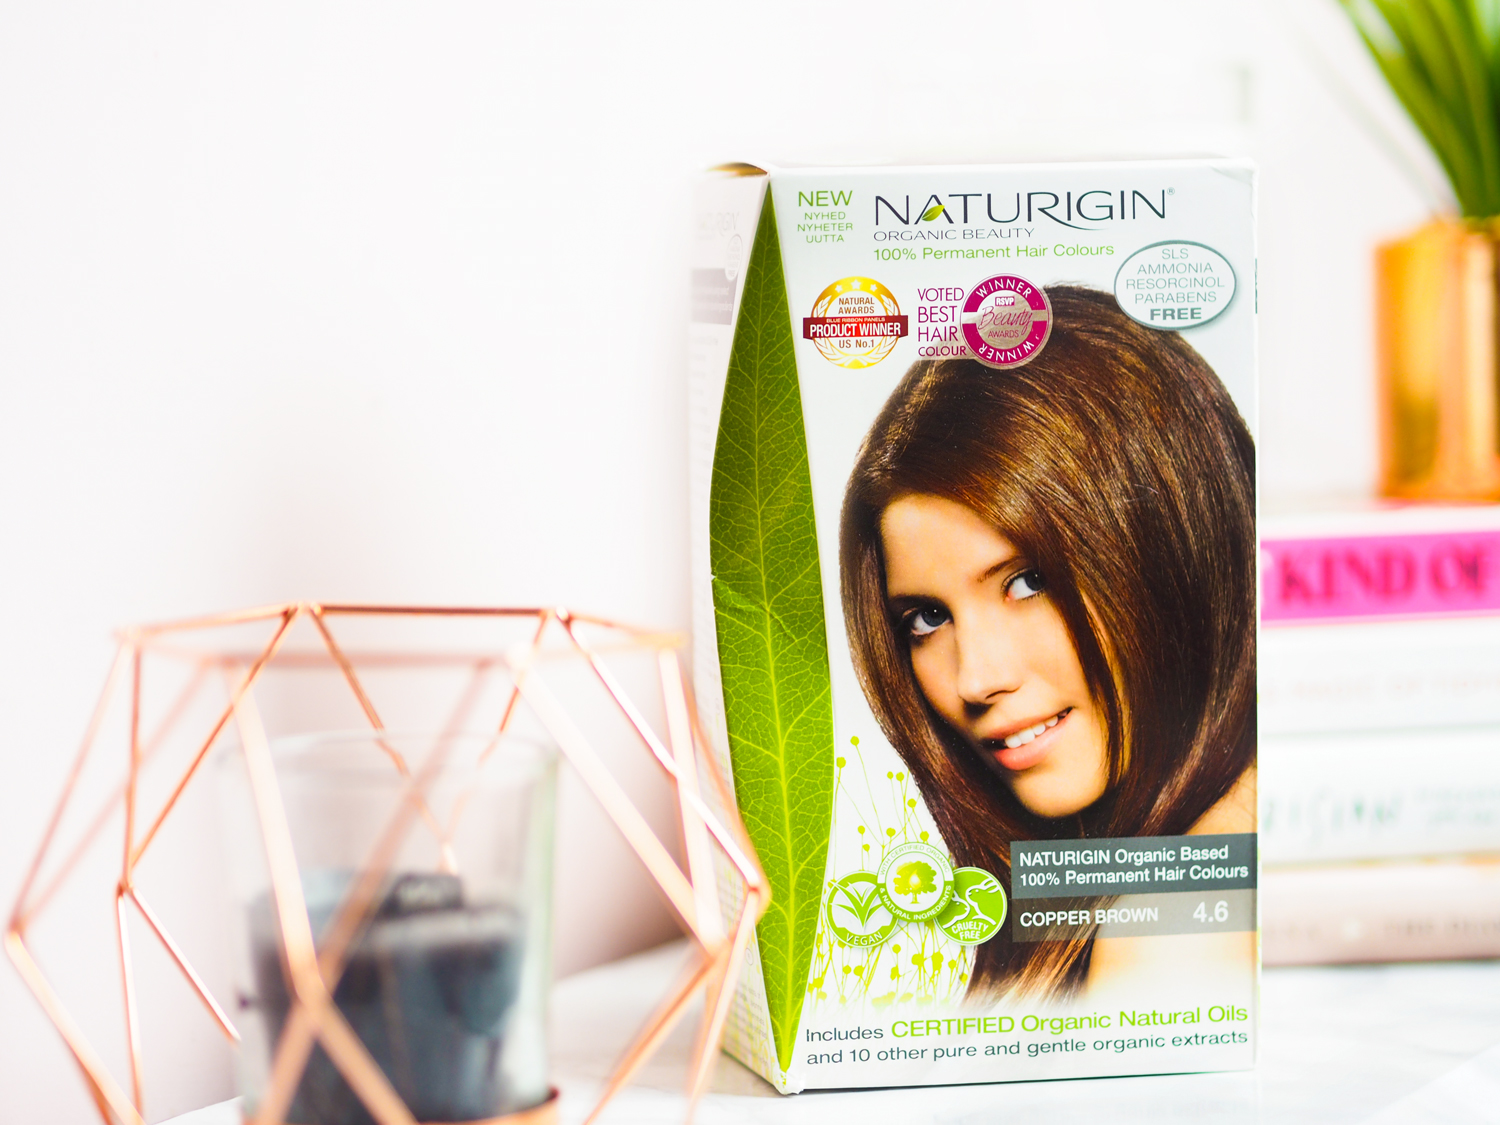 Naturigin: The Safe, Stink-free Way To Colour Your Hair At Home ...